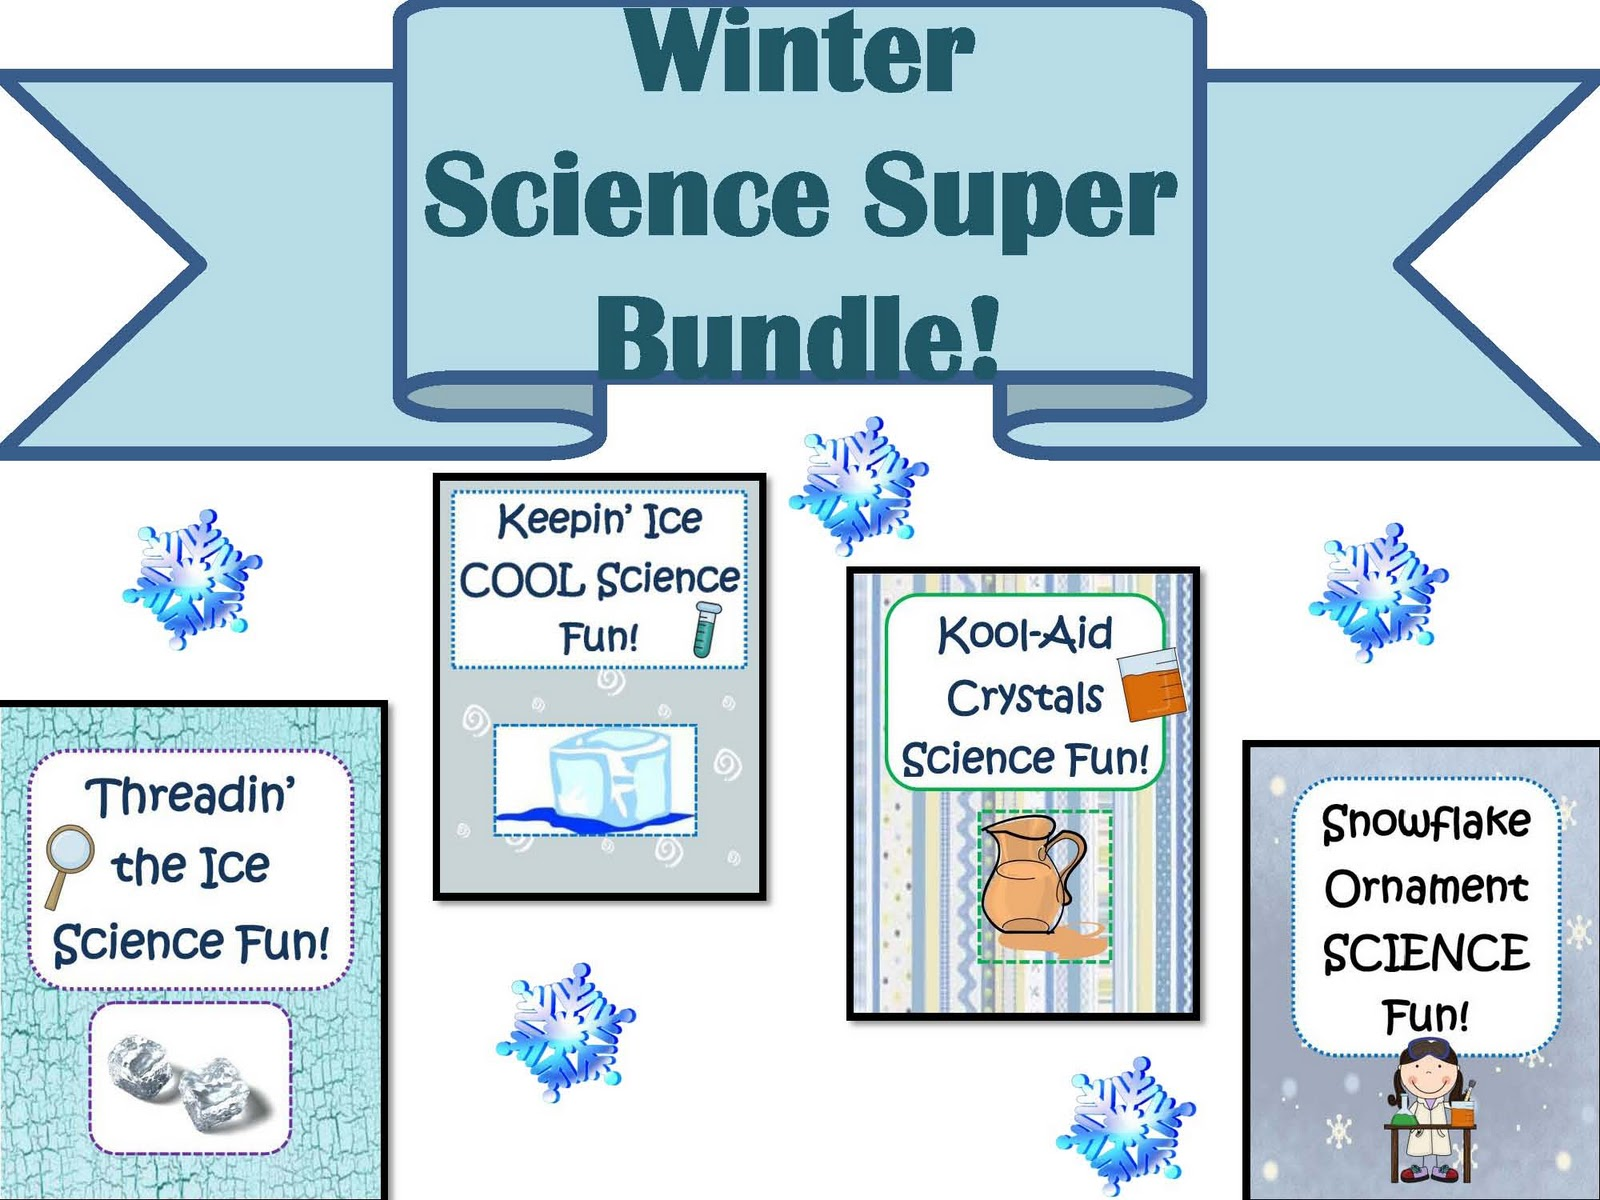 Little Miss Middle School Winter Science Super Bundle